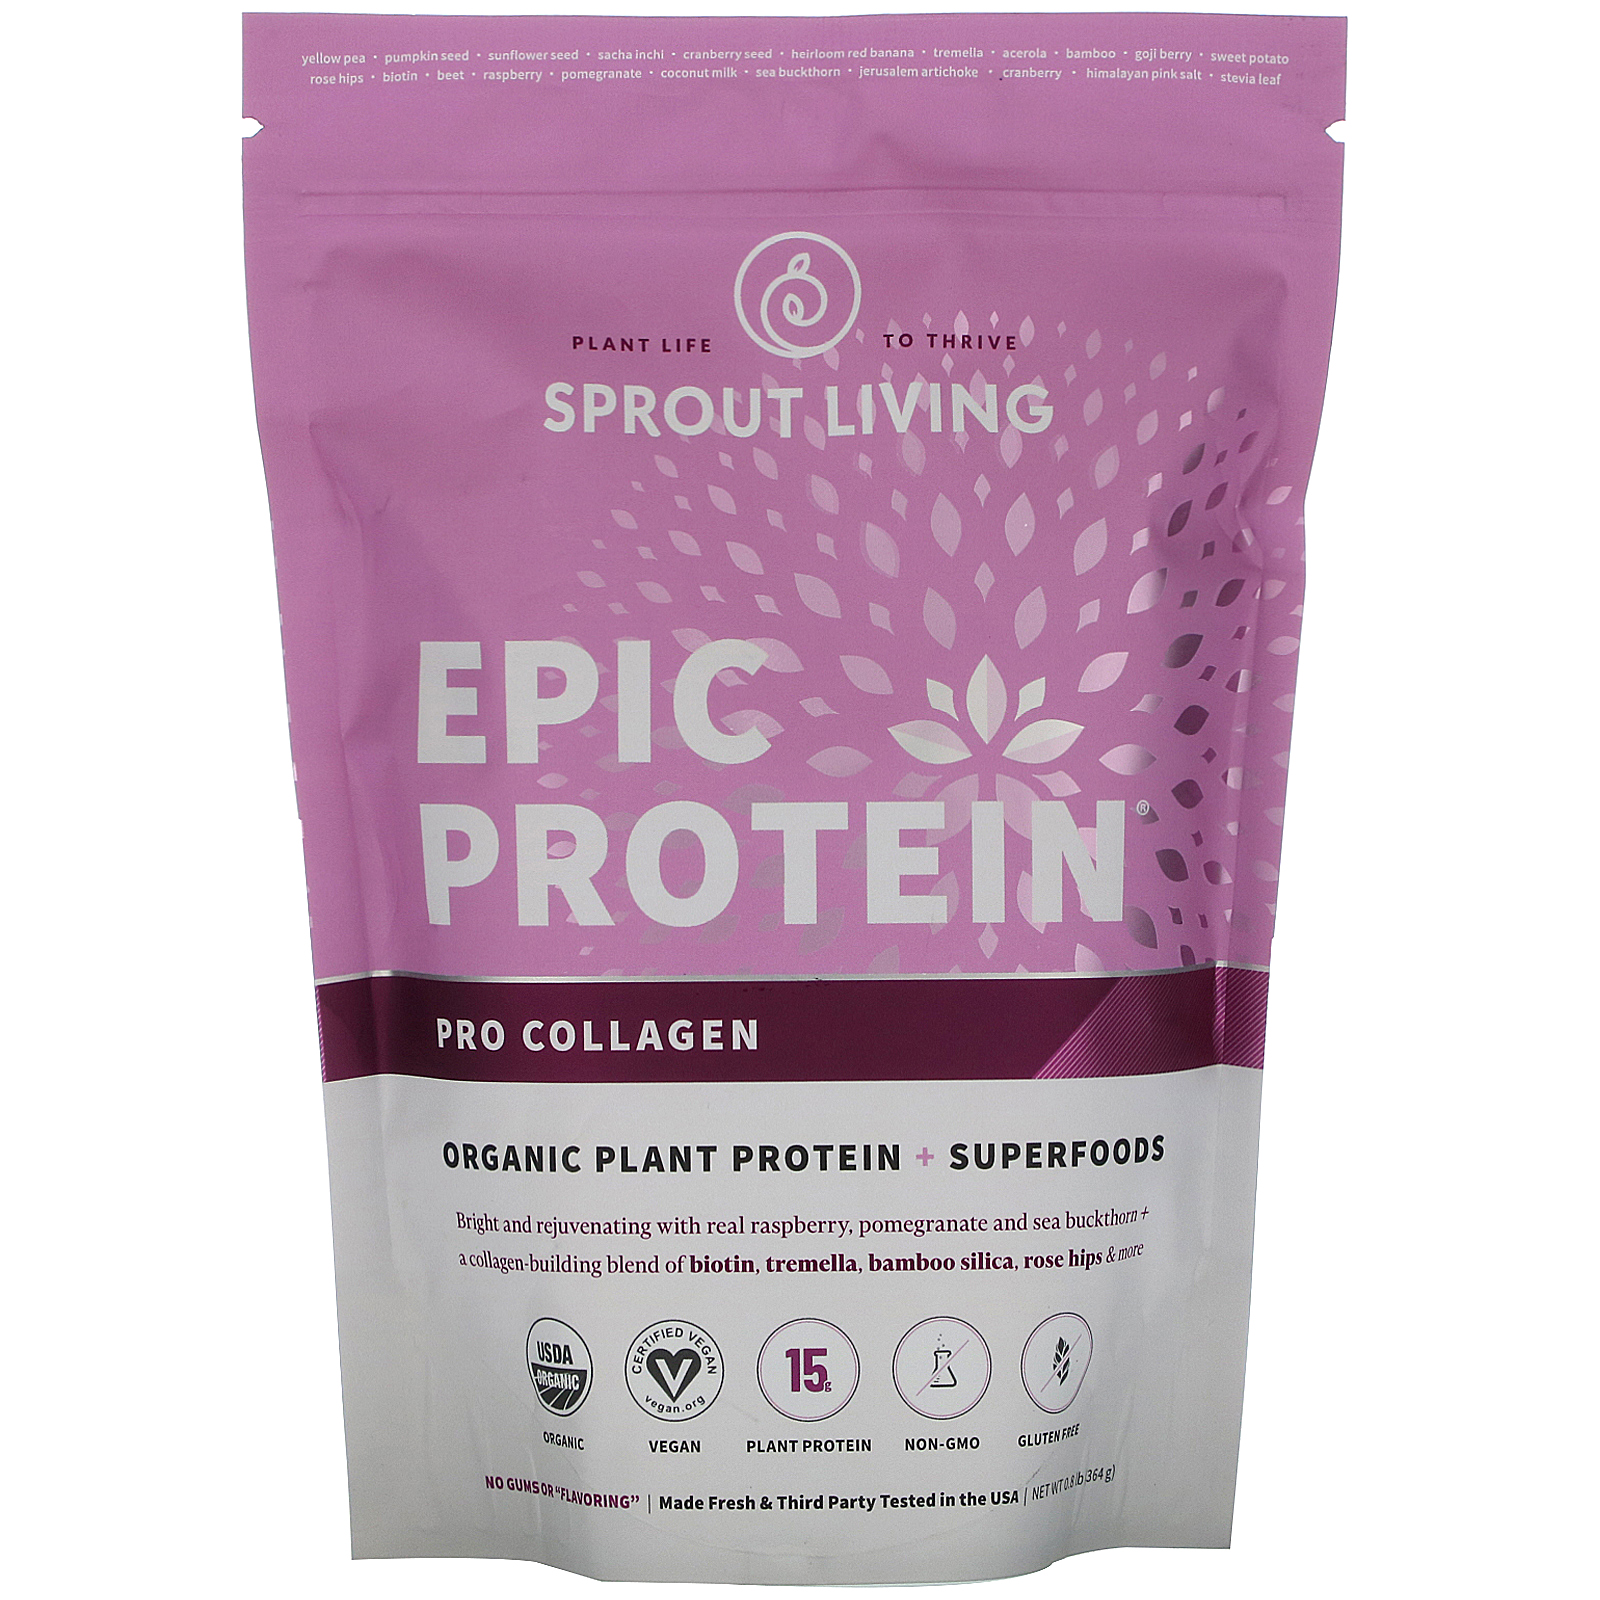 Sprout Living, Epic Protein, Organic Plant Protein + Superfoods, Pro Collagen, 0.8 lb (364 g)